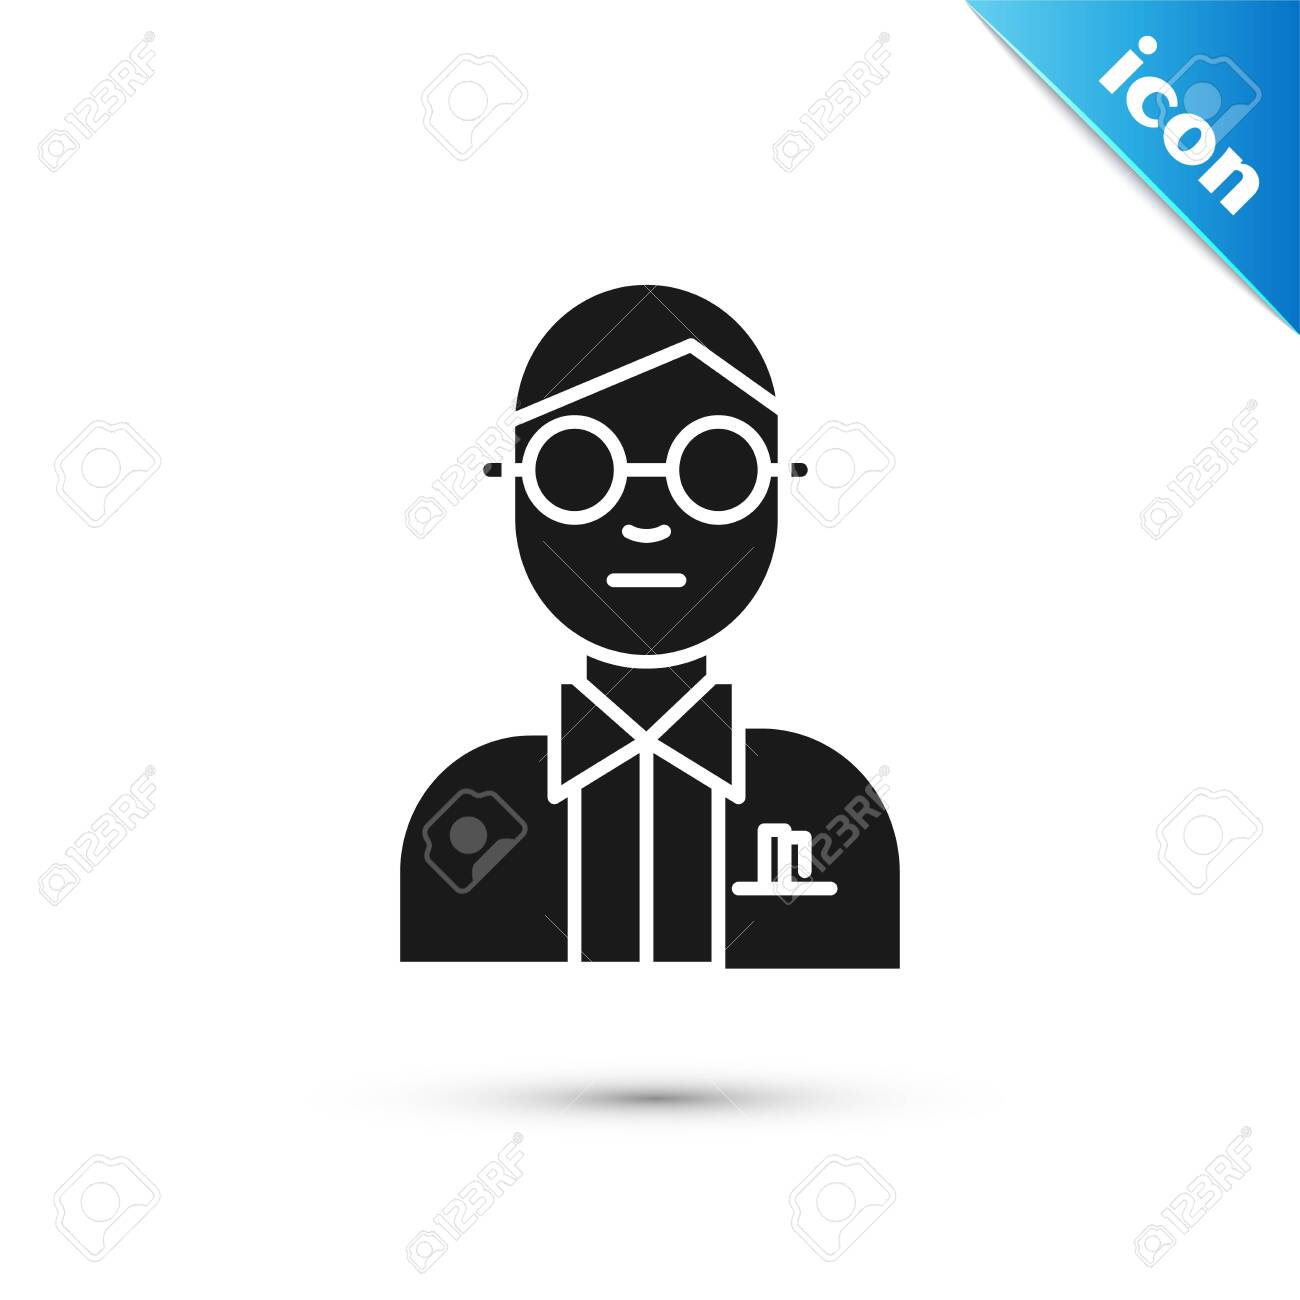 black scientist icon isolated on white background vector illustration royalty free cliparts vectors and stock illustration image 132713234 123rf com